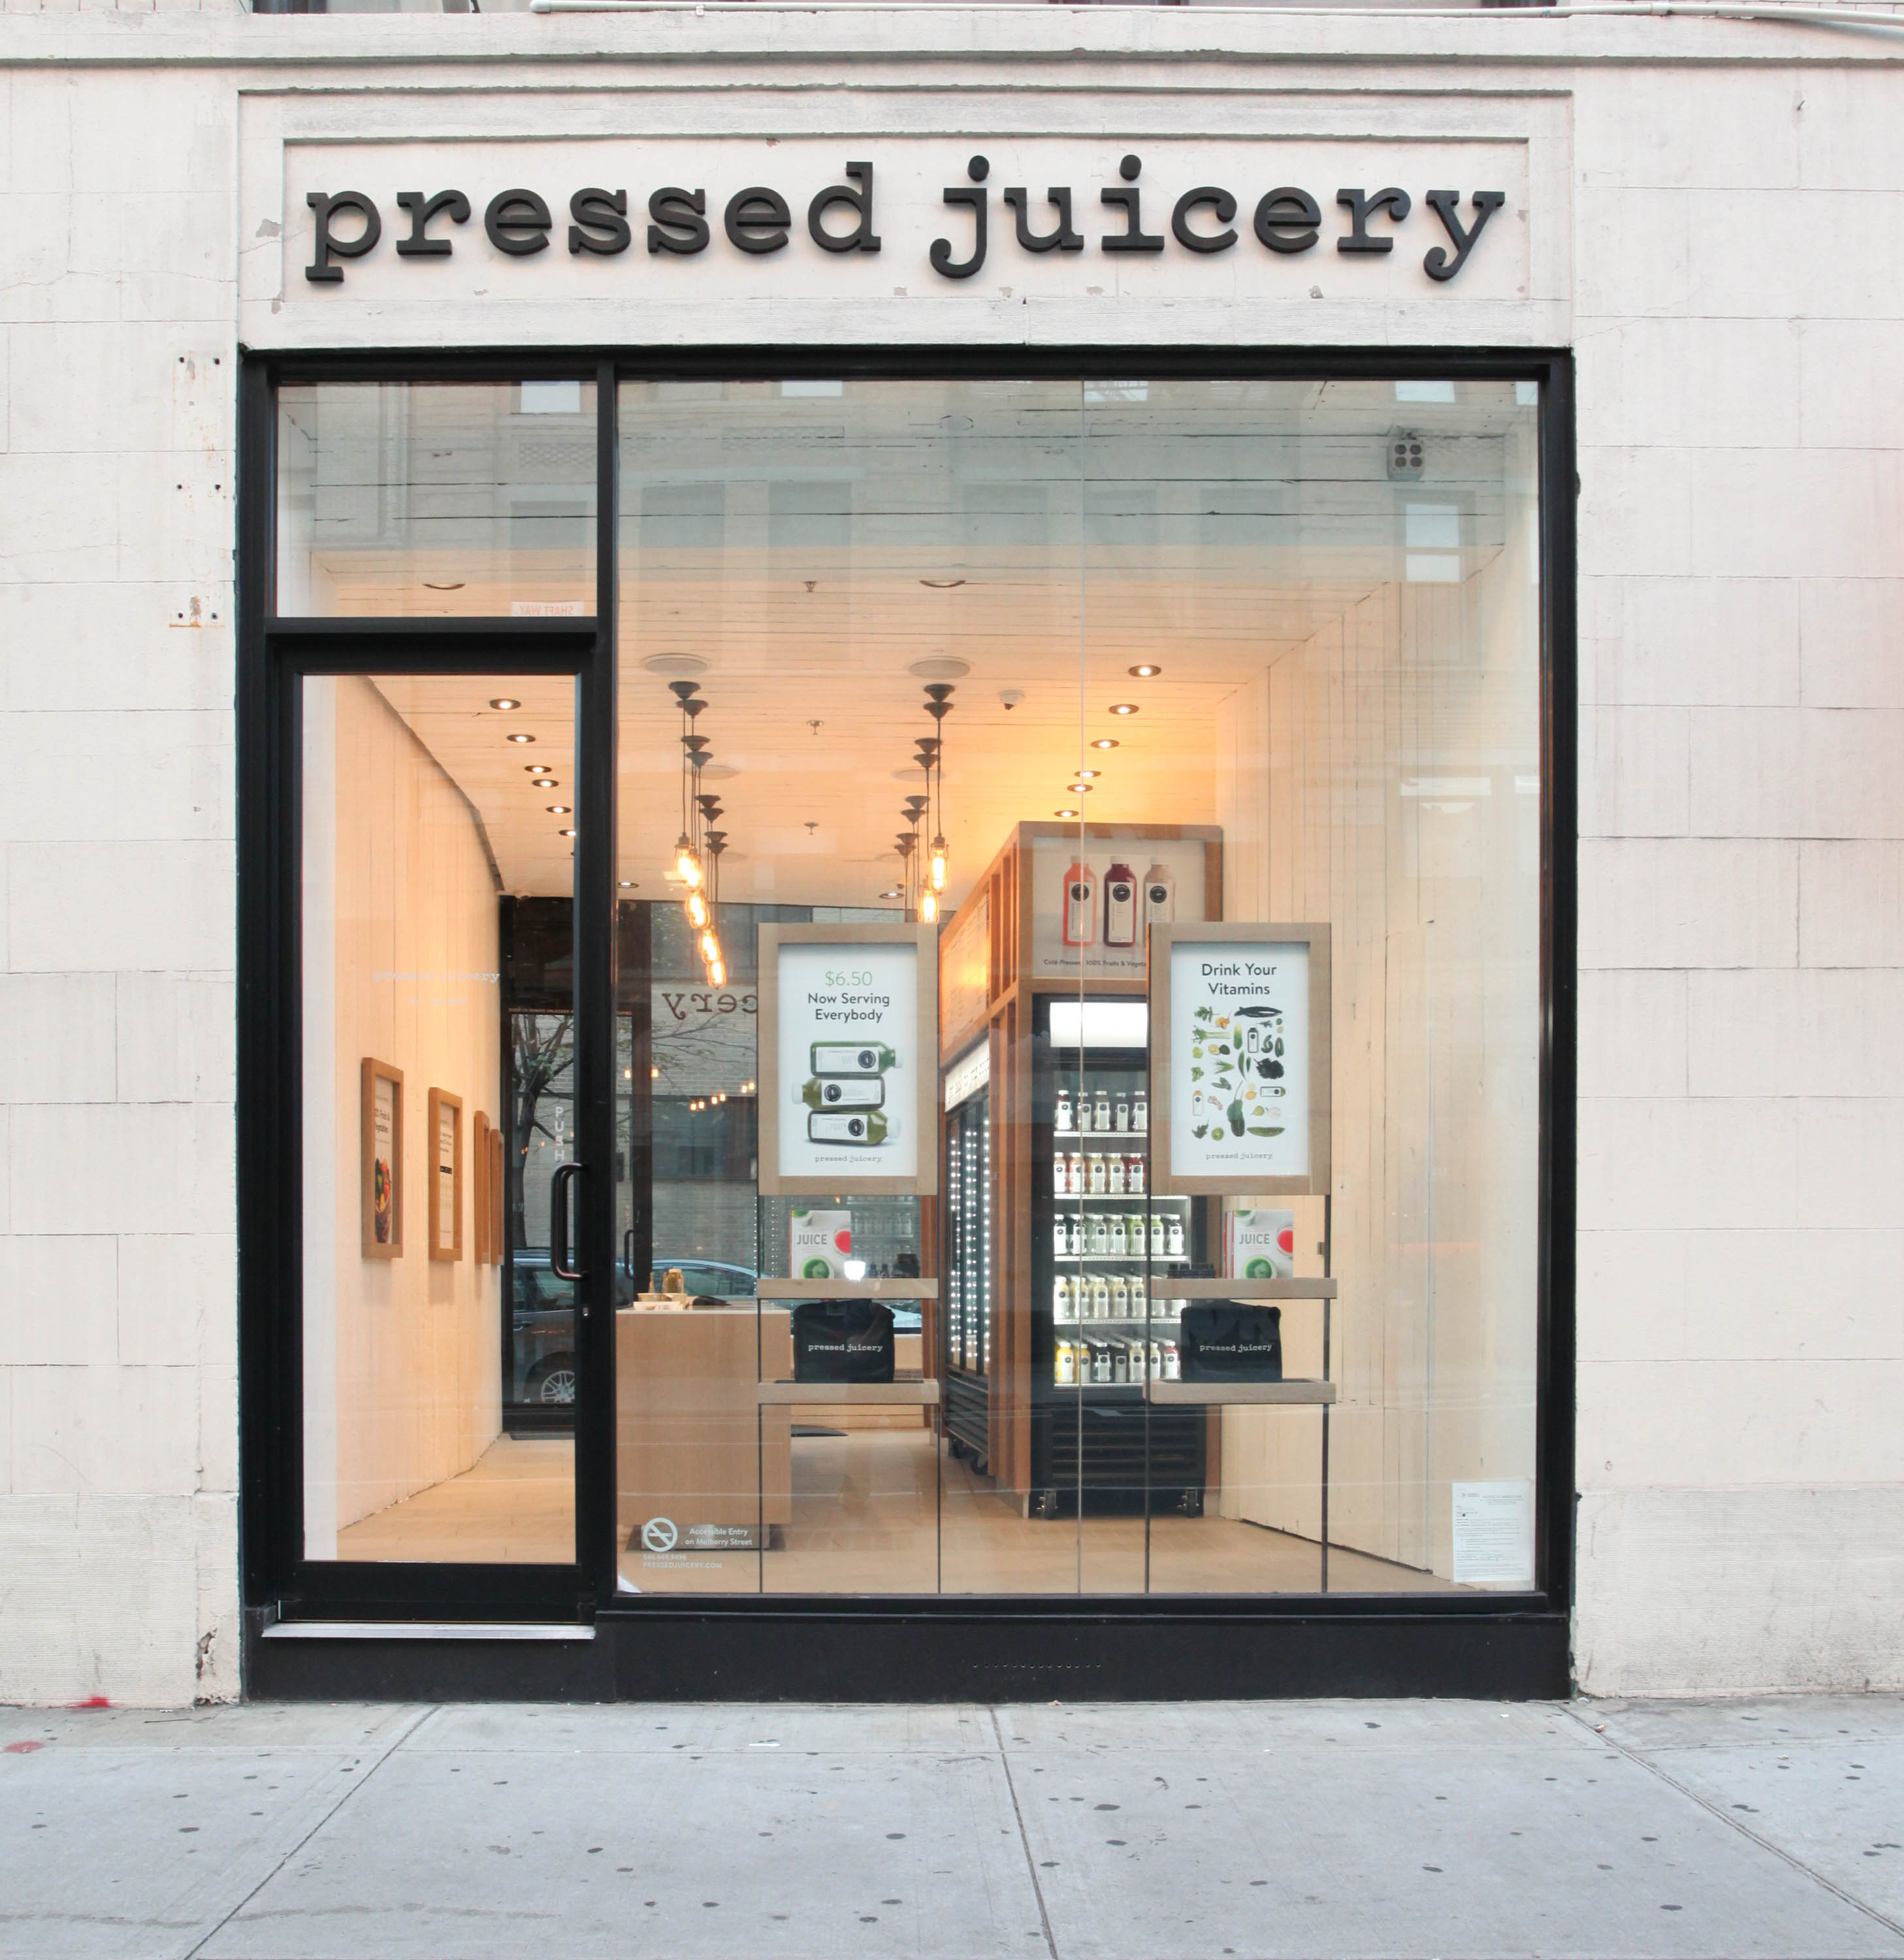 NEW YORK, NY - NOVEMBER 04: Pressed Juicery NYC Store Interiors at Pressed Juicery on November 4, 2015 in New York City. (Photo by Donald Bowers/Getty Images for Pressed Juicery)